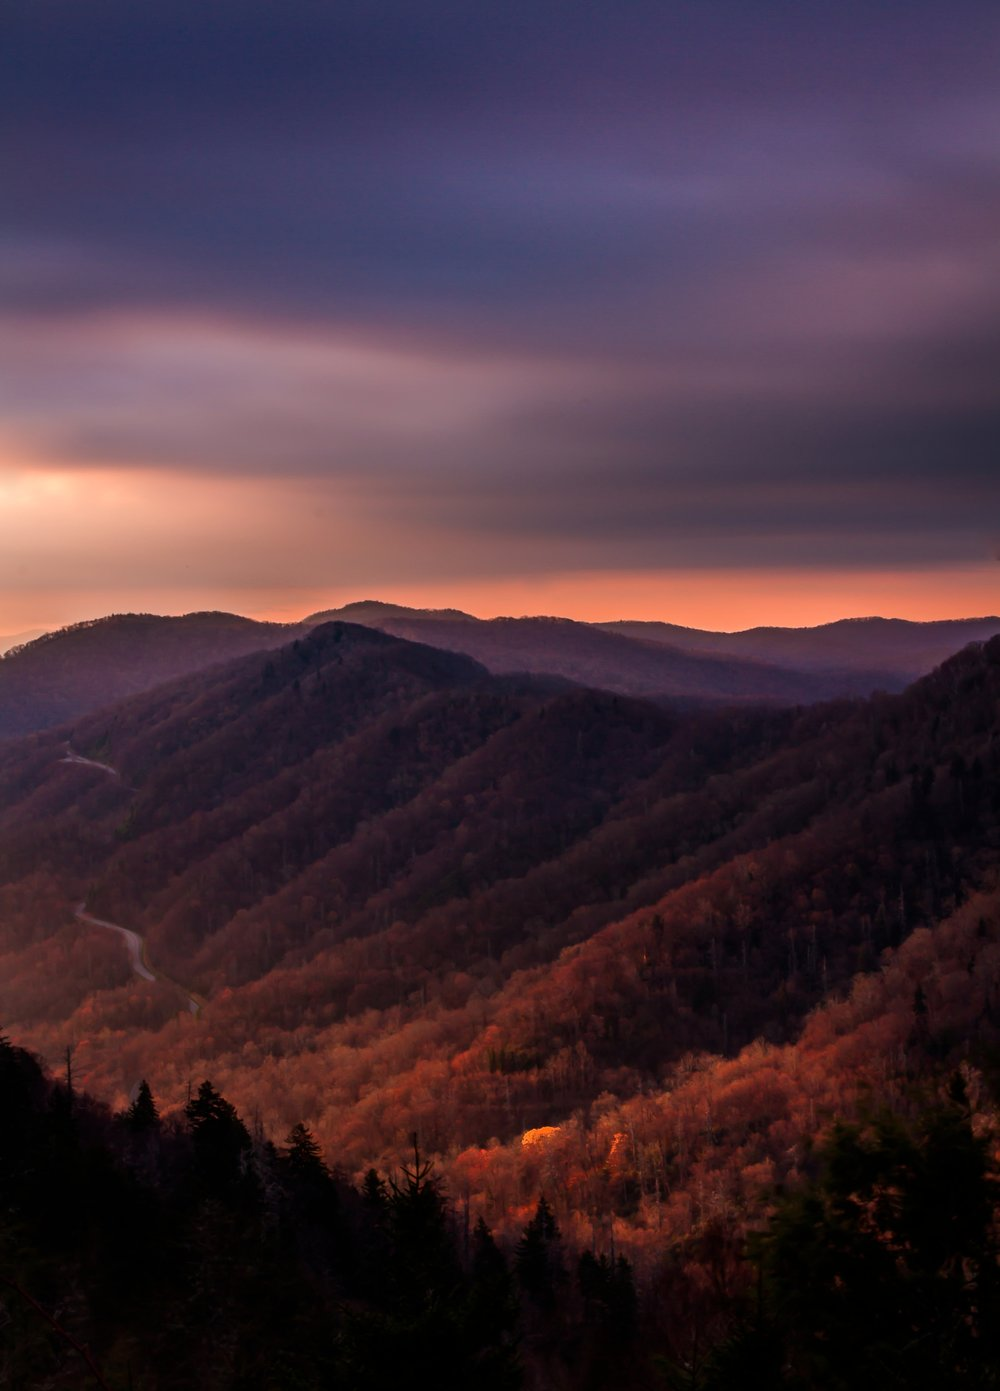 Sunrise in the Smokies. Taken with a Canon 7D with an EF-S 18-200 lens. f/22, shutter 5 sec., ISO 100.